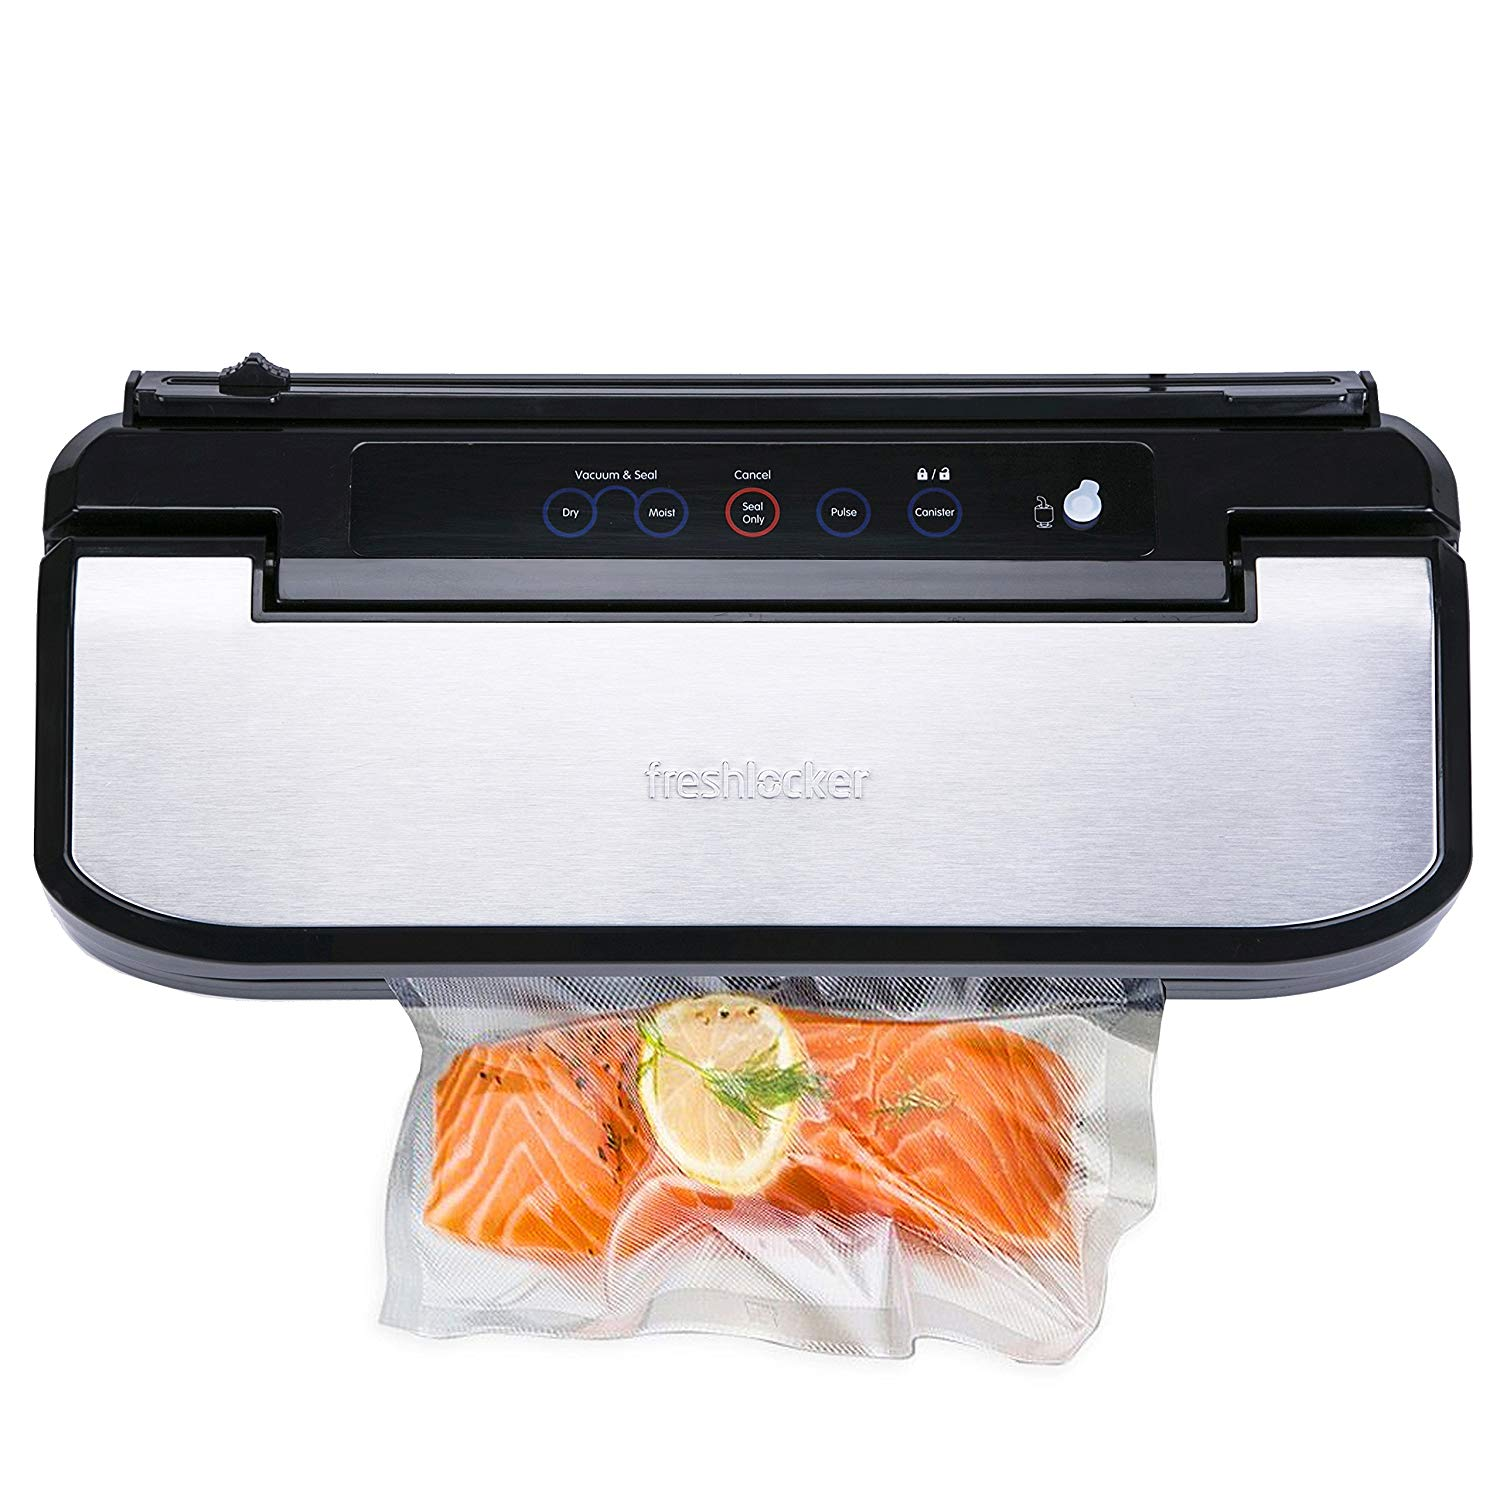 Freshlocker VS160S Vacuum Sealer Automatic Air Sealing System Machine with Starter Bags and Rolls